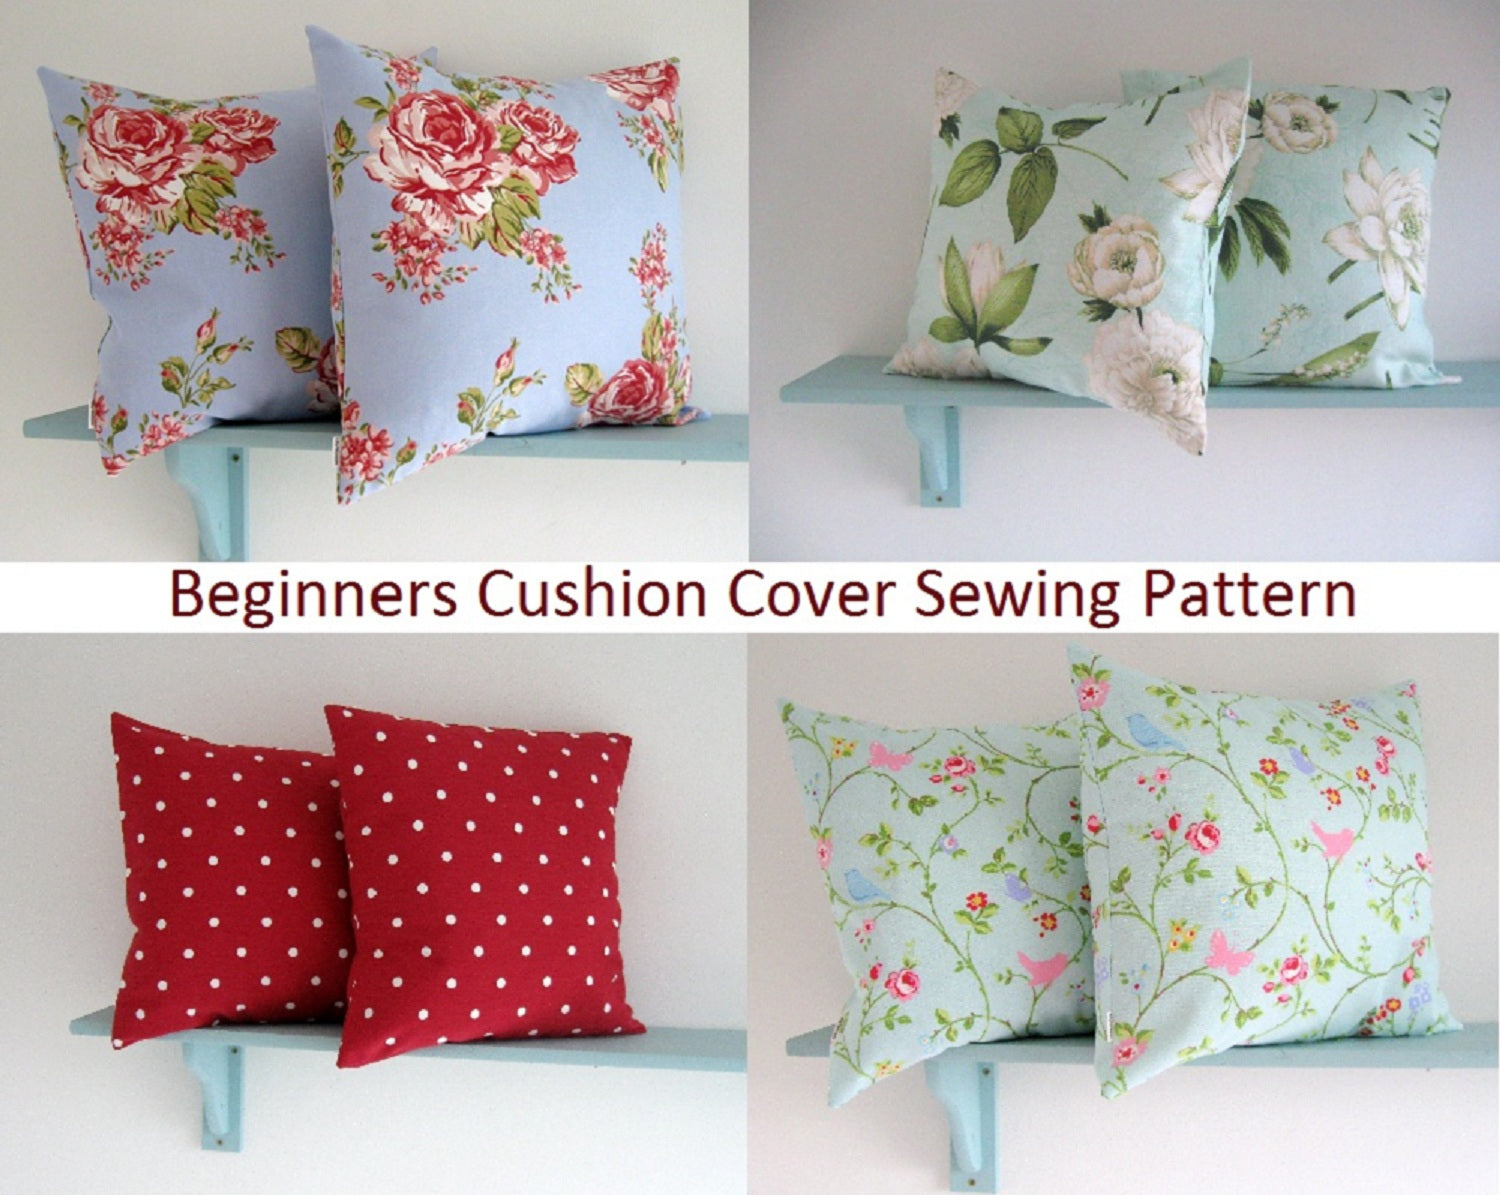 Lilly*Blossom Envelope Cushion Cover 003